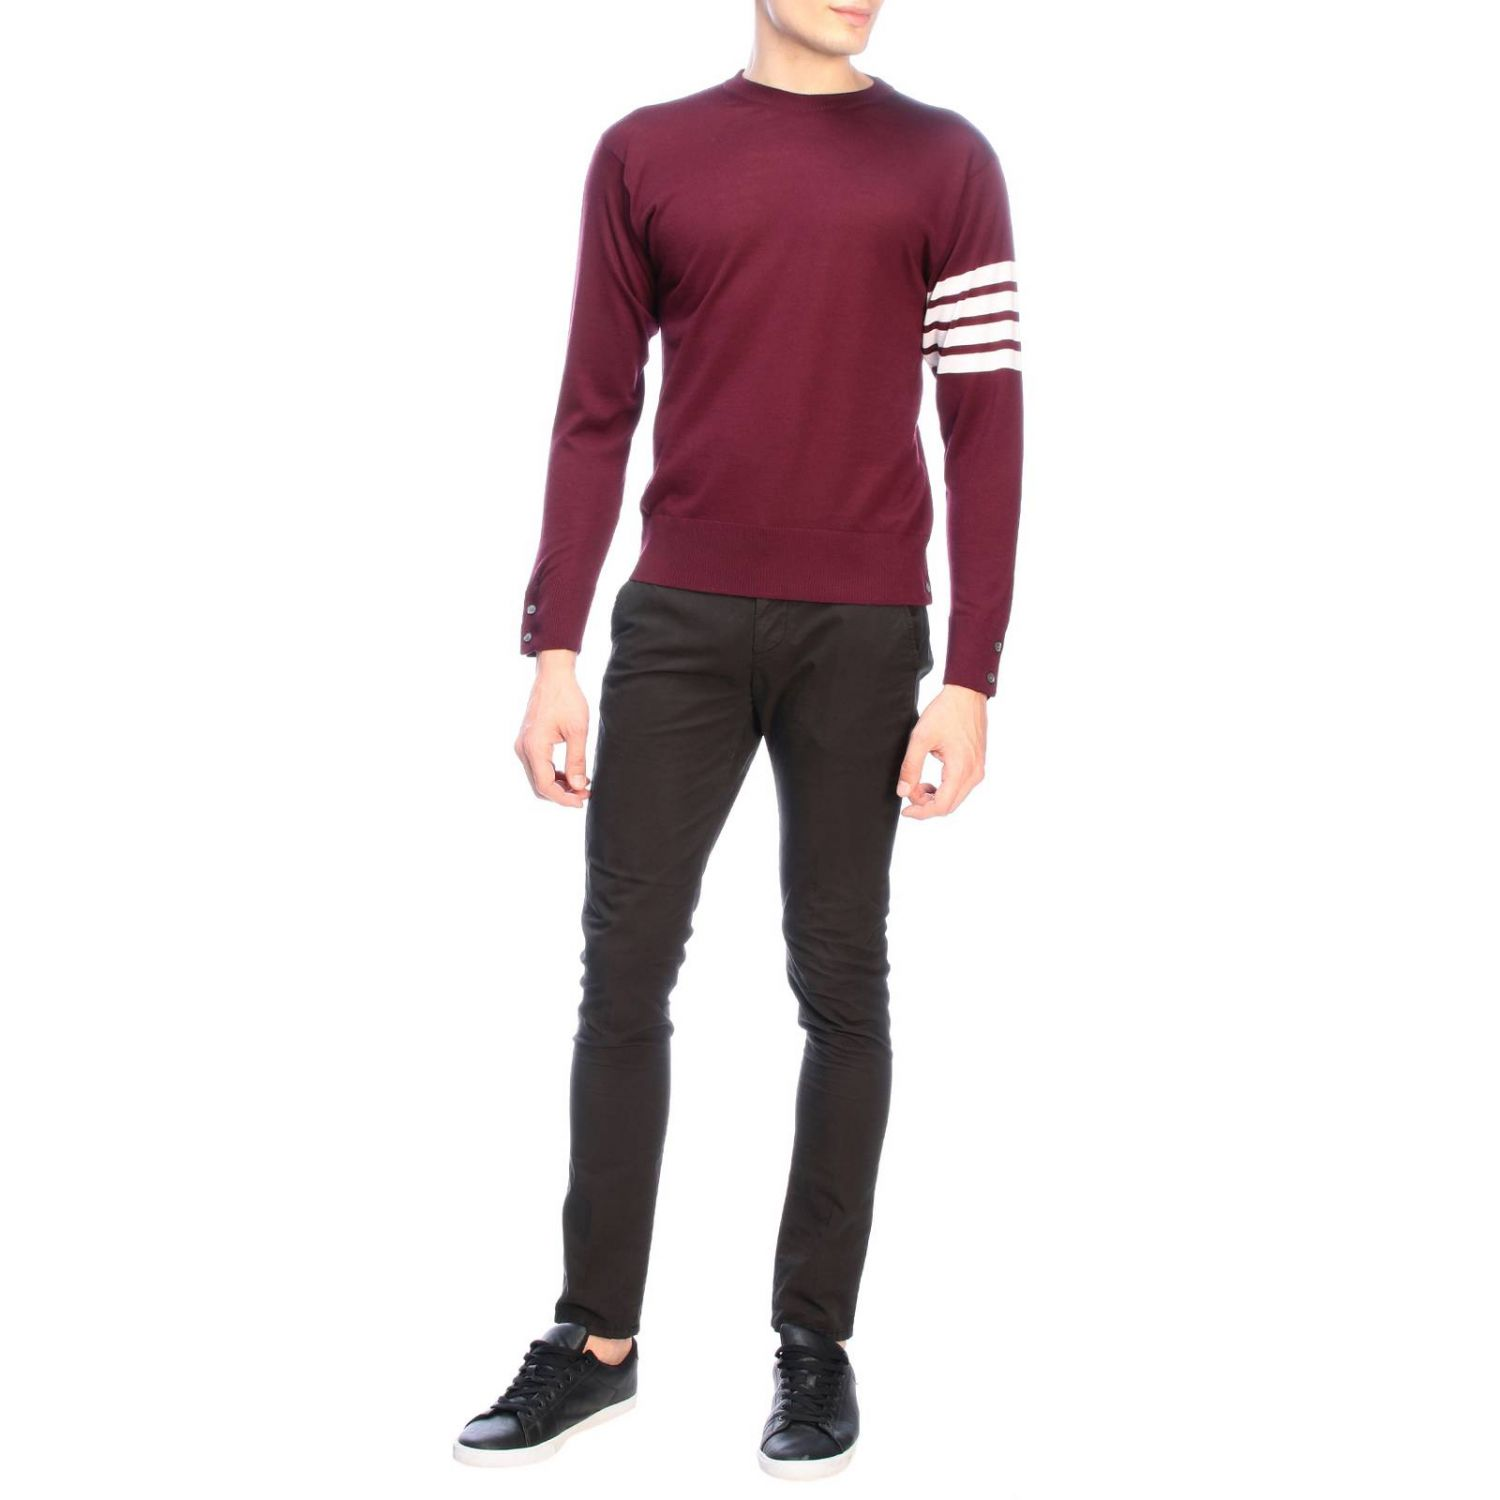 Pull homme Thom Browne bordeaux 2